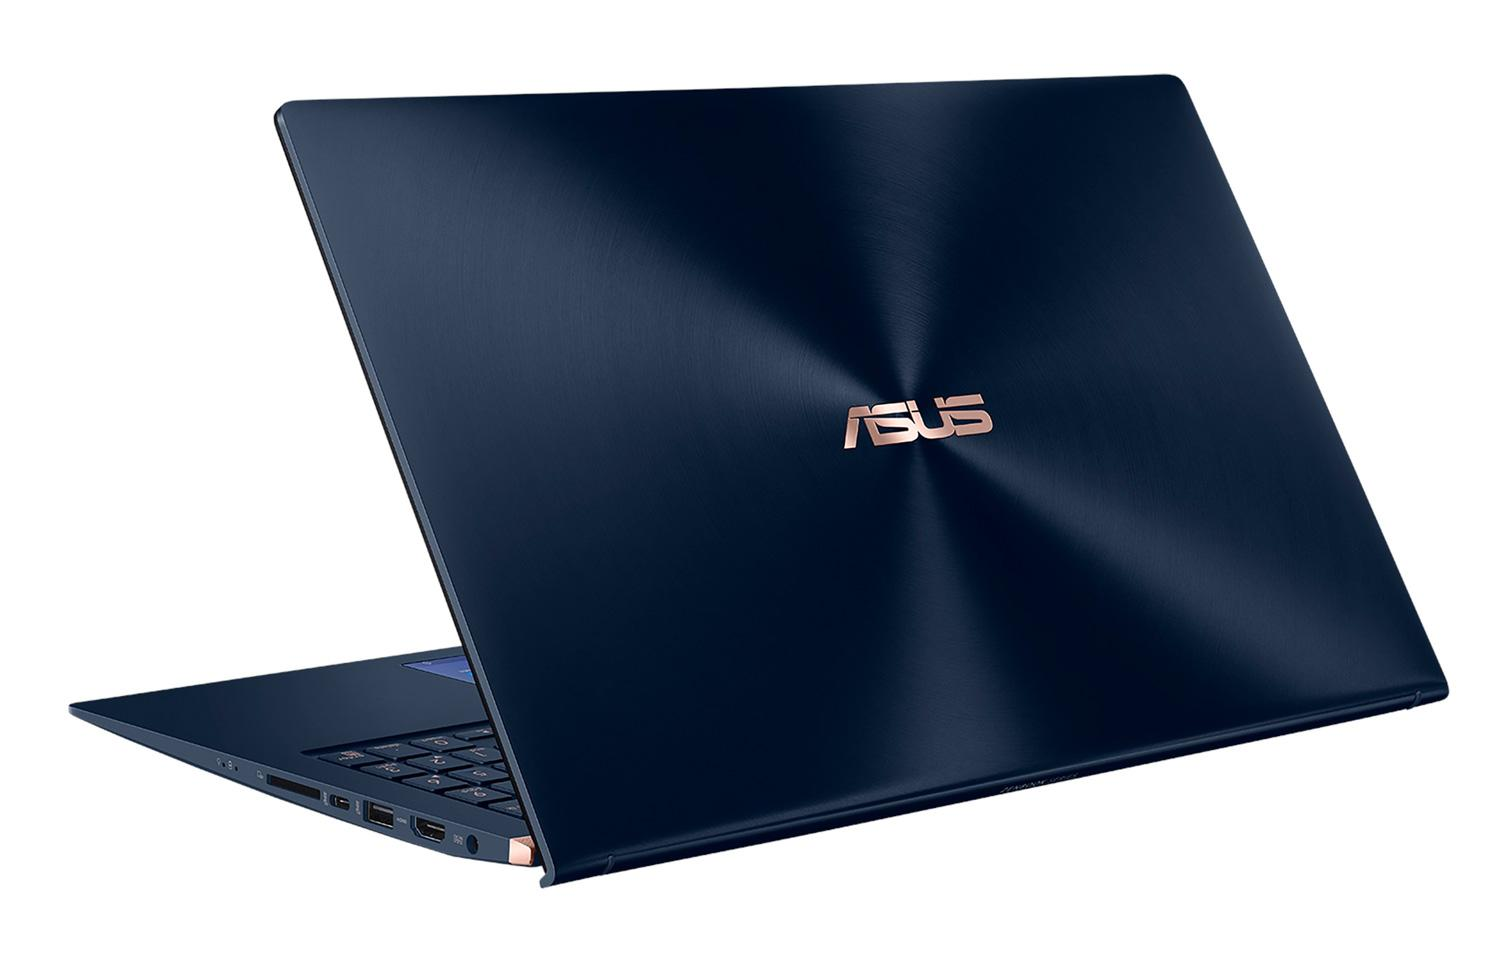 Image du PC portable Asus ZenBook UX534FT-A9011T Bleu - GTX 1650 Max-Q, SSD 1 To, ScreenPad